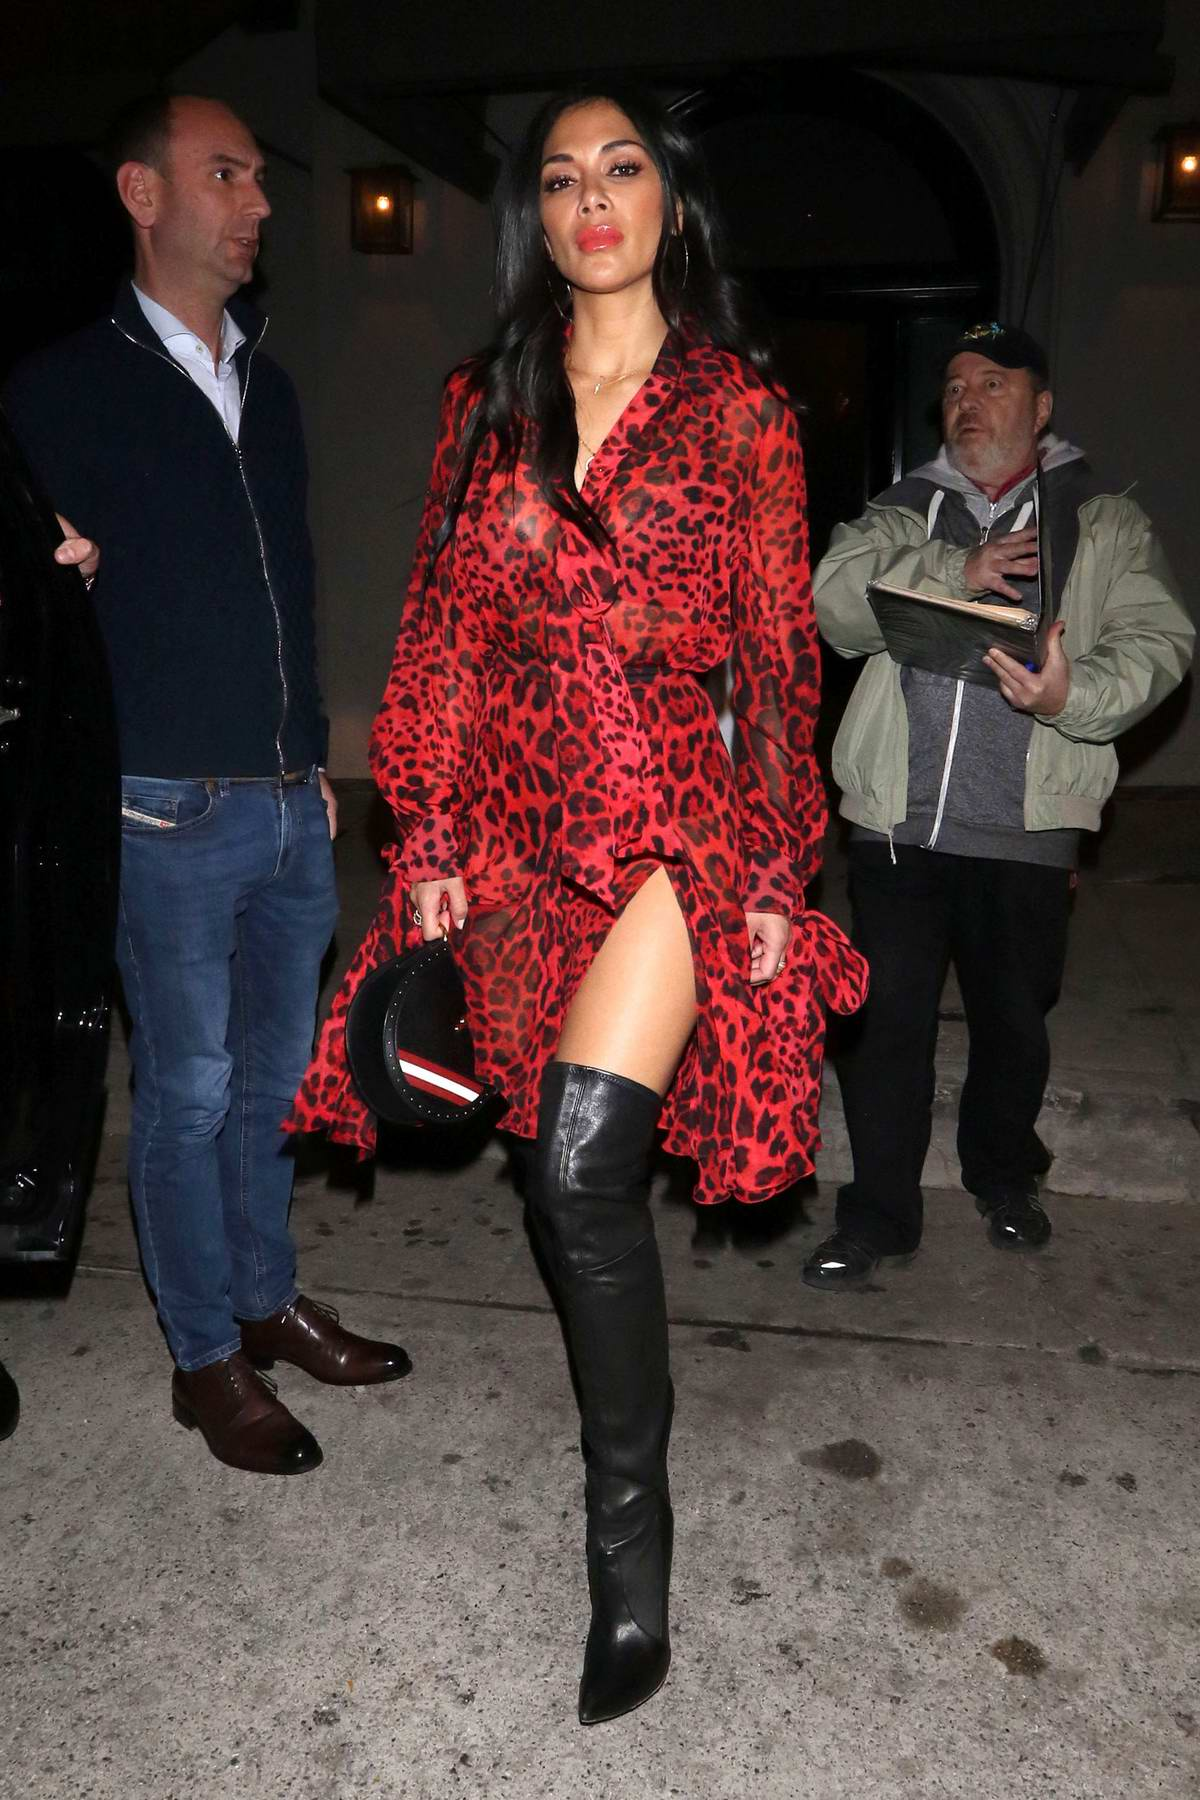 Nicole Scherzinger spotted in a red animal print dress at Craig's in West Hollywood, Los Angeles